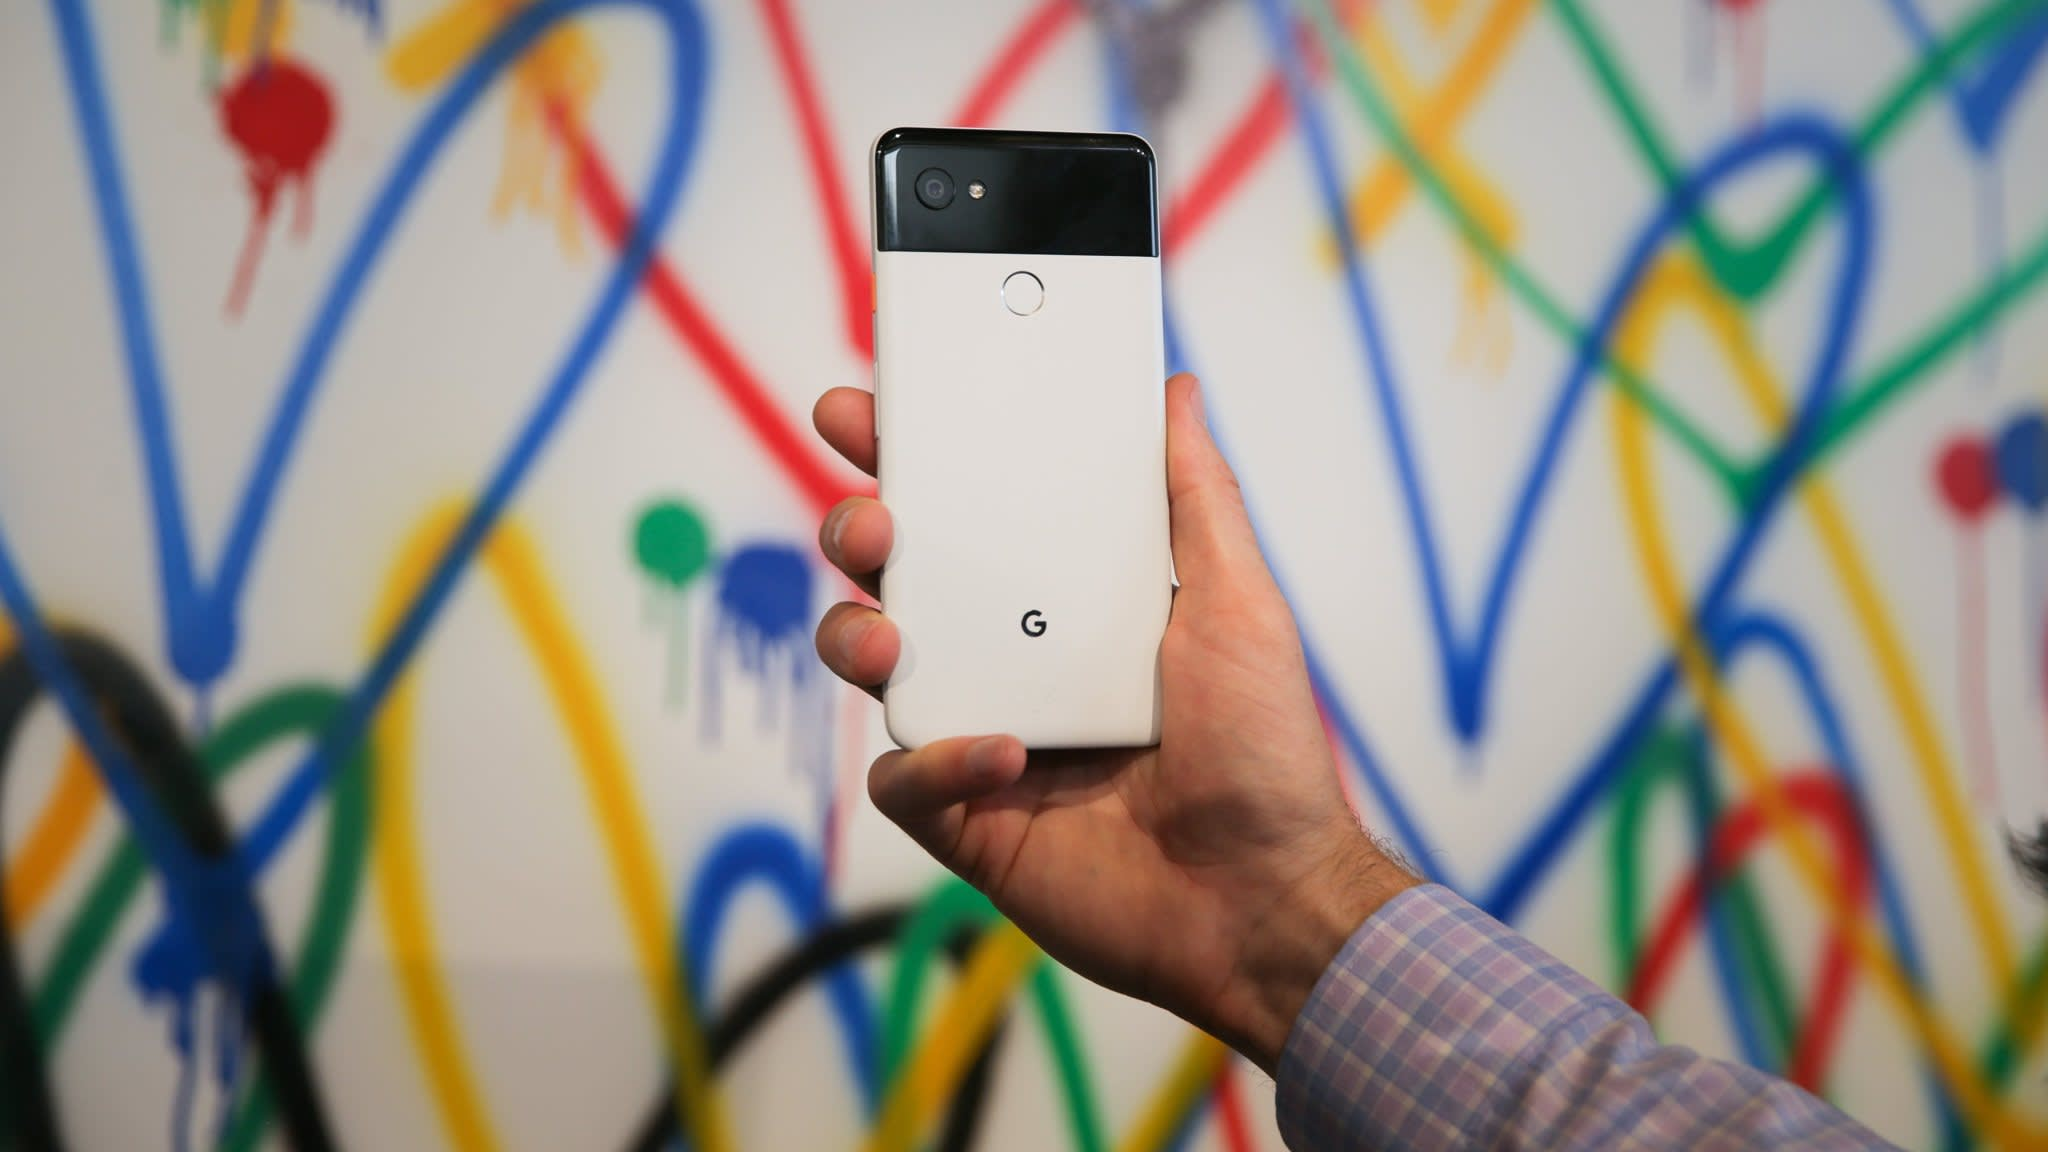 Review: Google's Pixel 2 is tantalisingly close to a leap forward | Financial Times